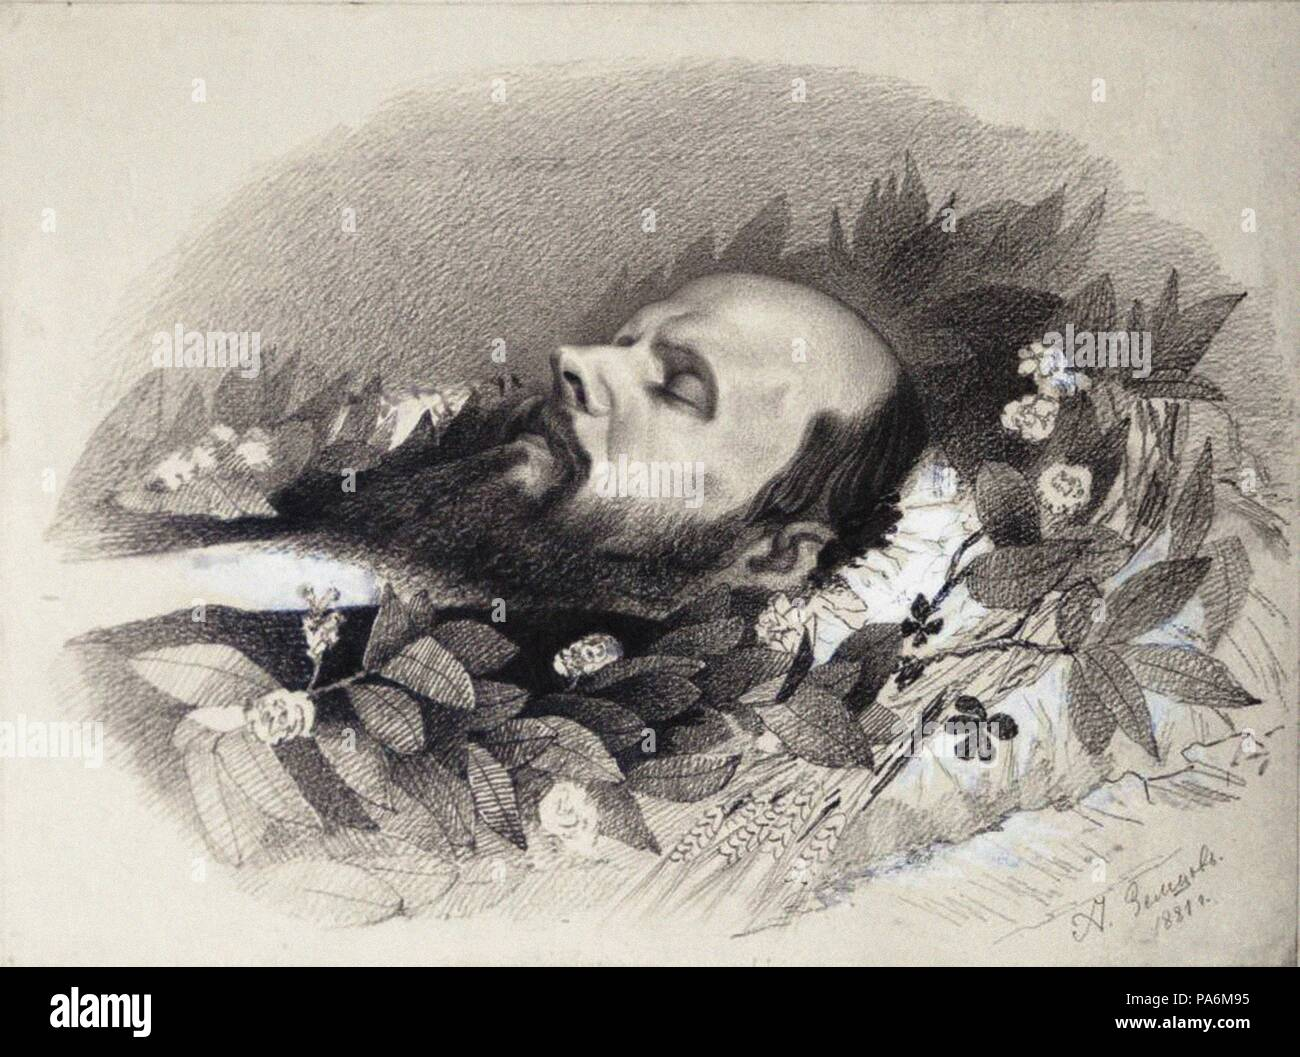 Fyodor Dostoyevsky on the deathbed. Museum: F. Dostoyevsky Memorial Museum, Moscow. - Stock Image